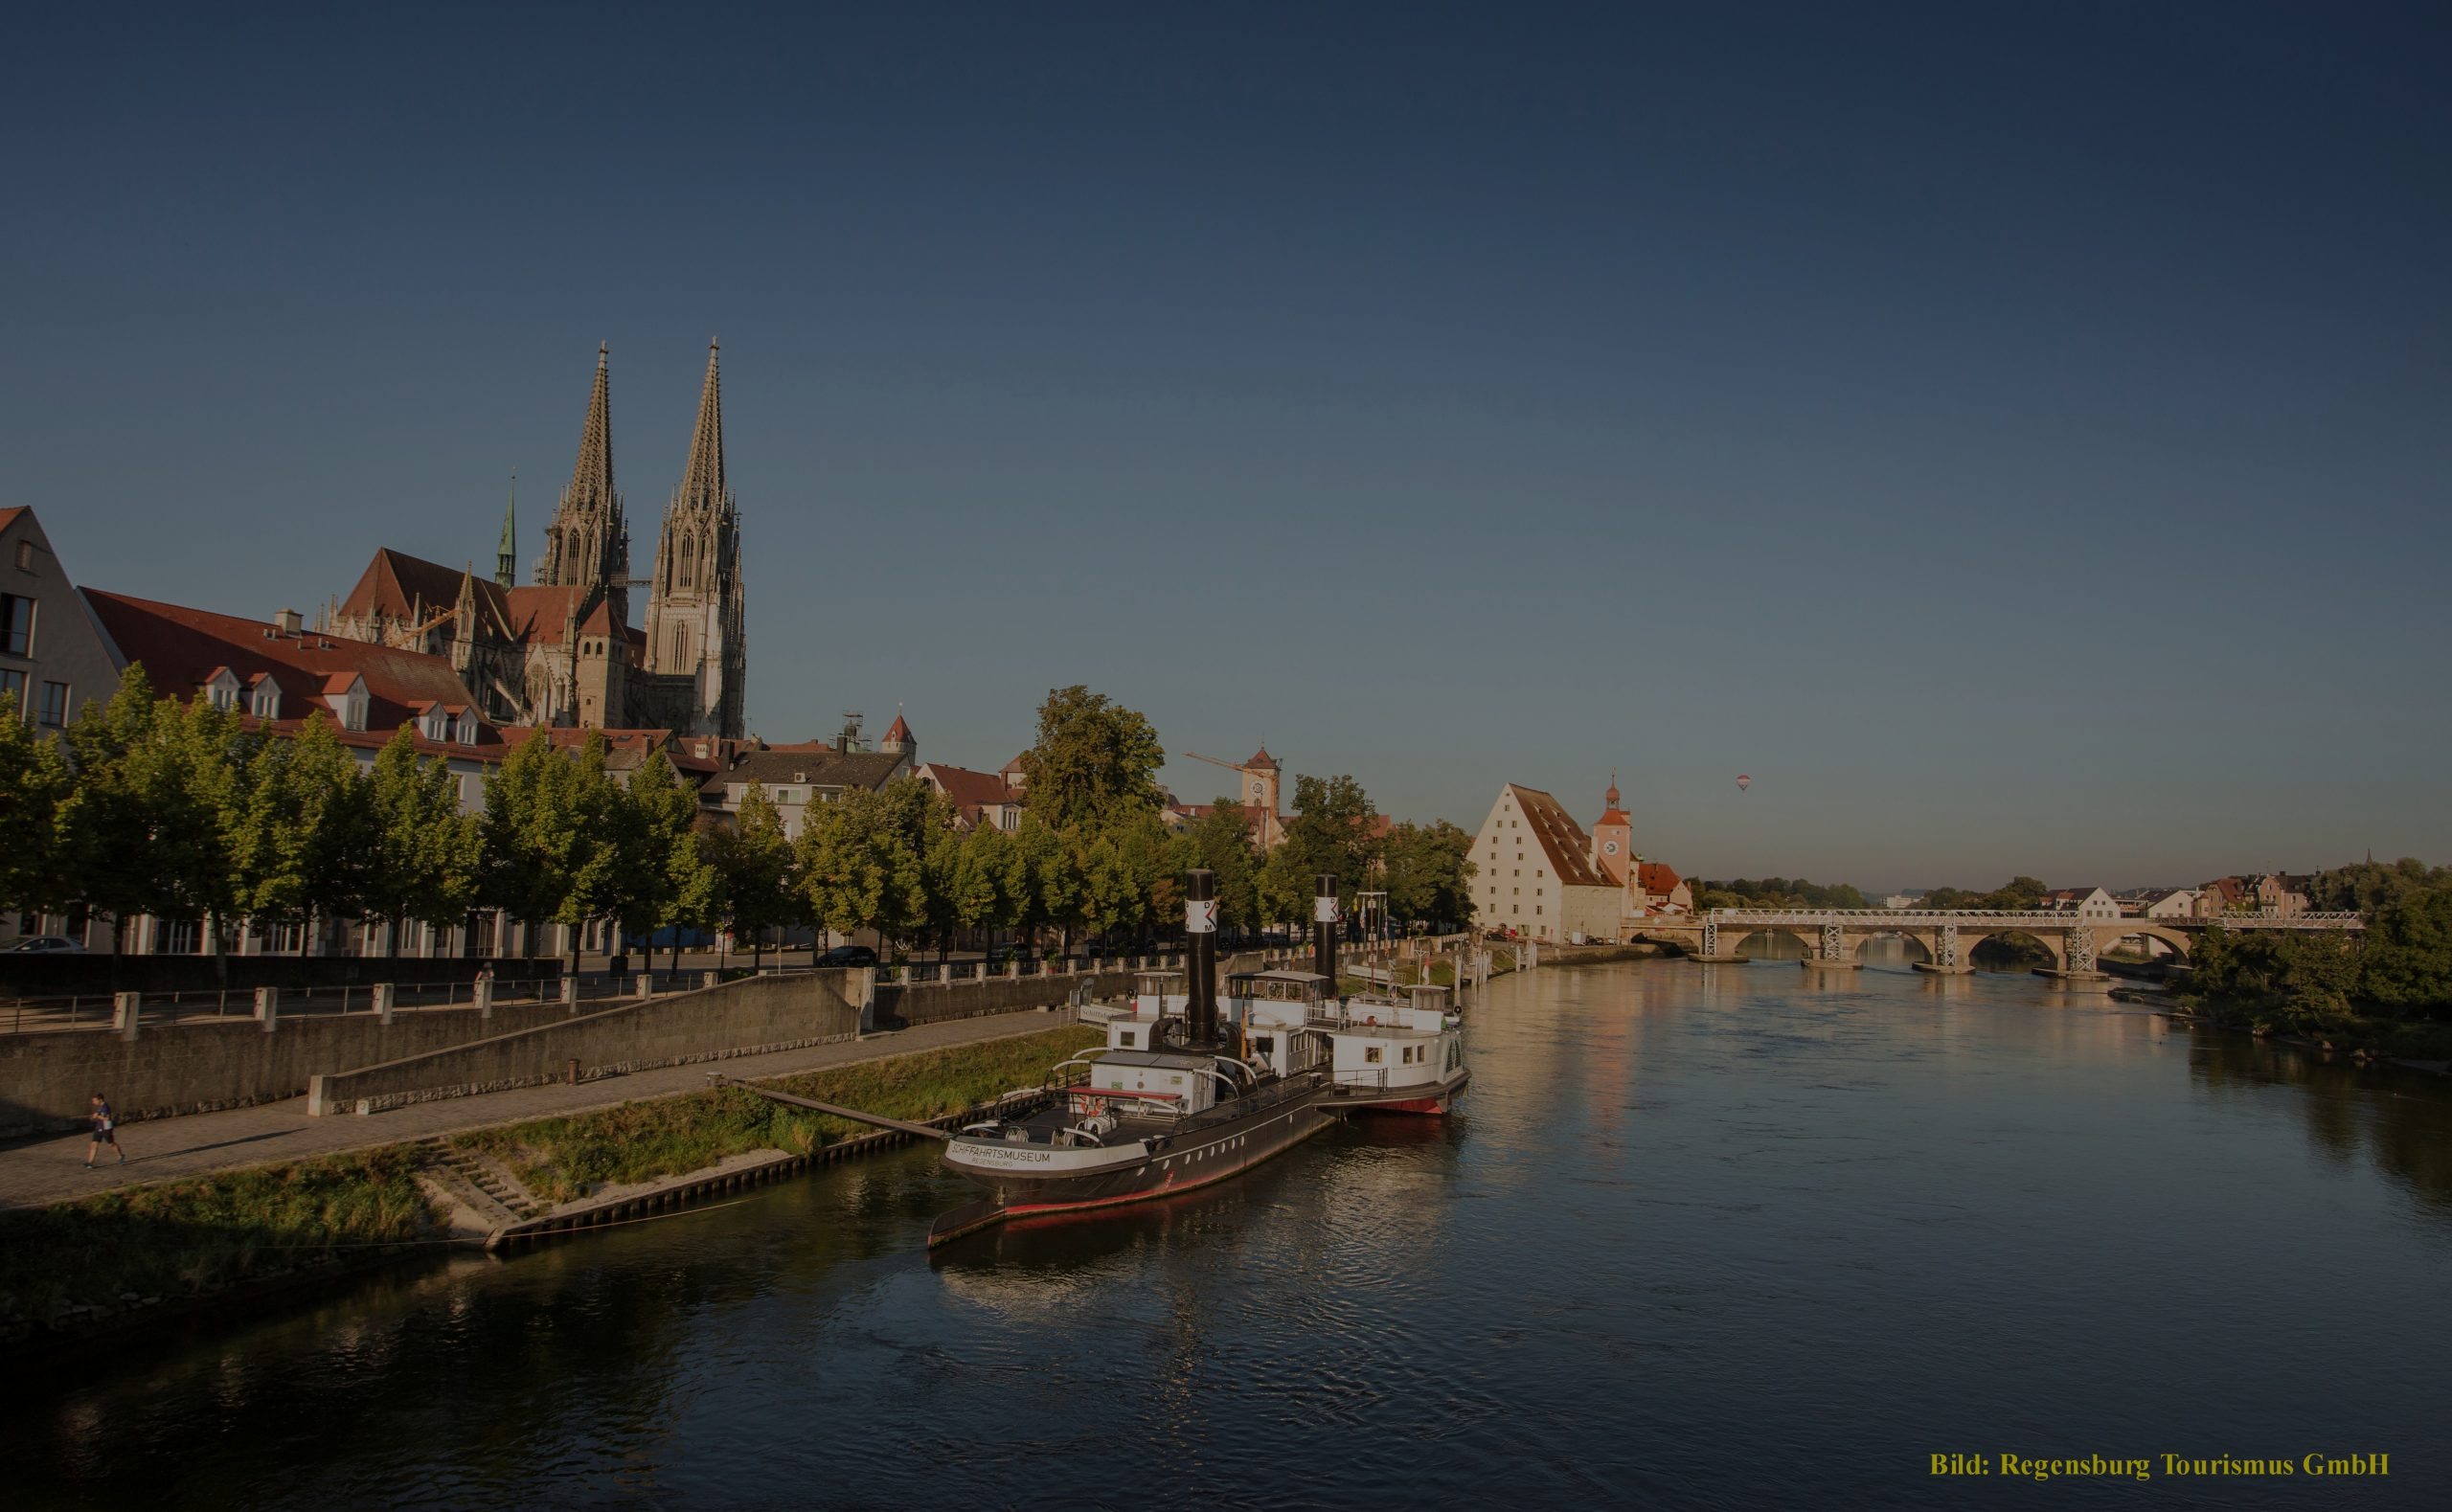 Regensburg Dome, Stone bridge and river with boats